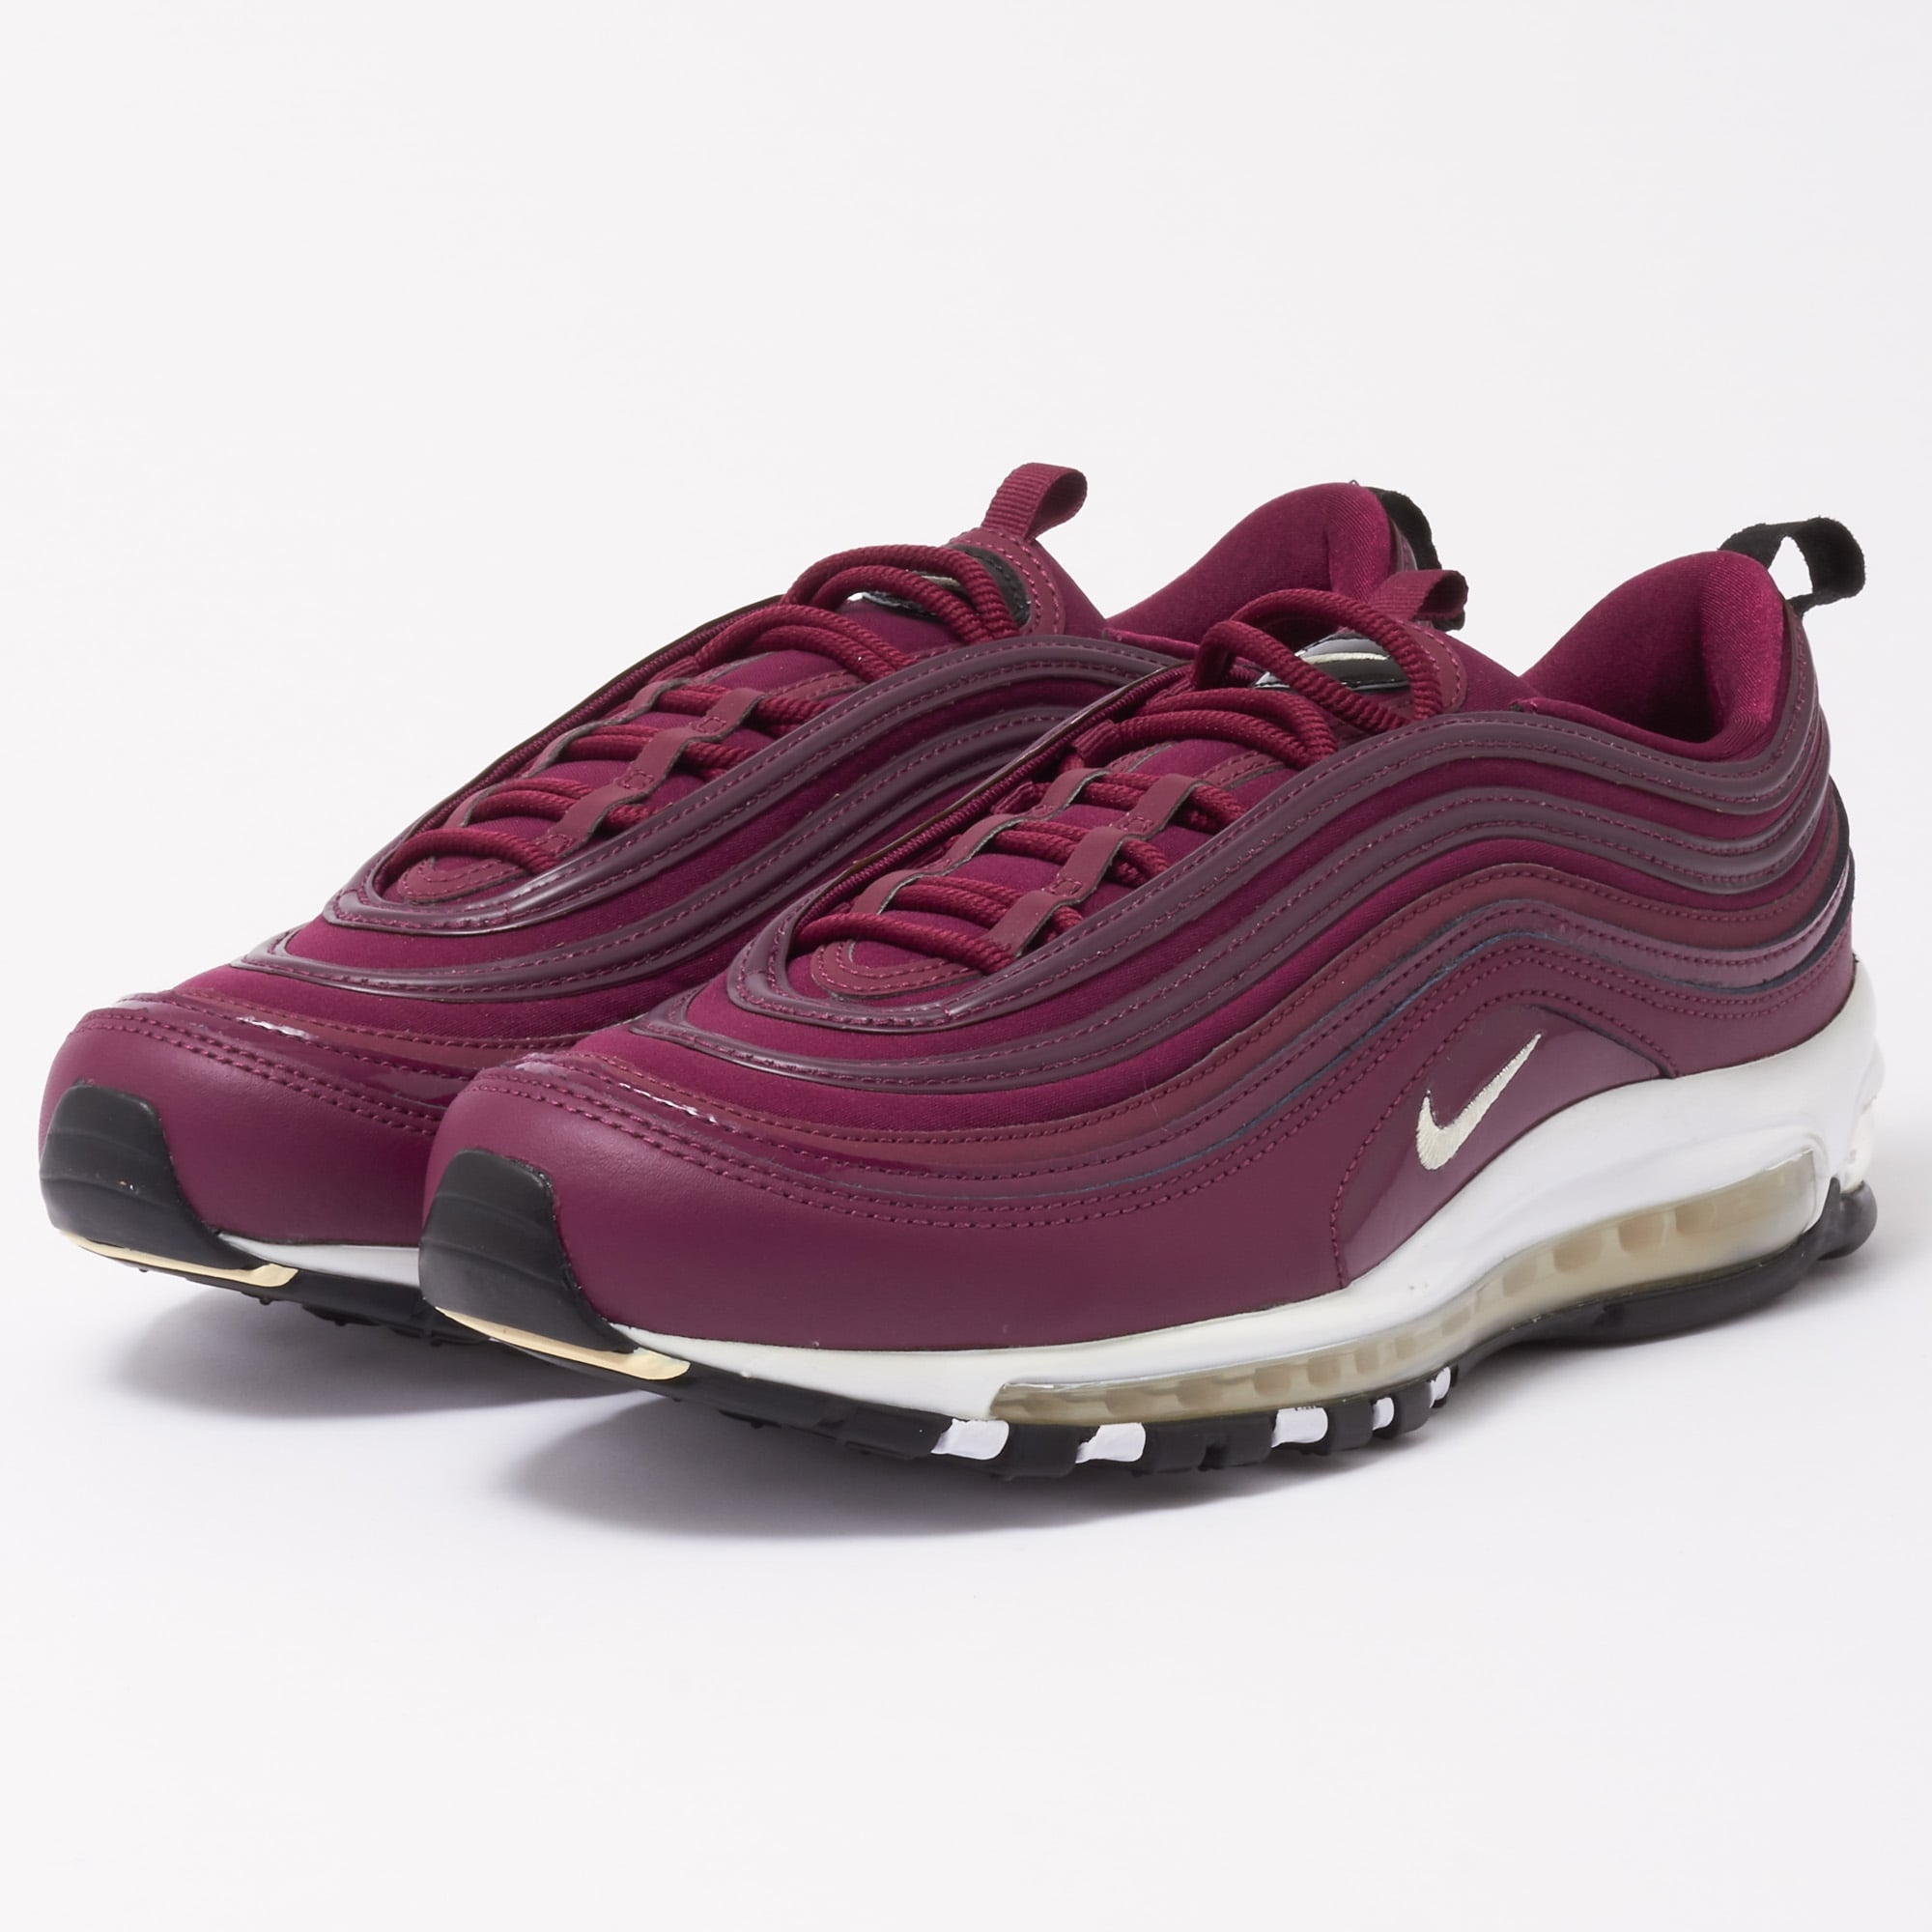 Air Max 97 PRM - Bordeaux